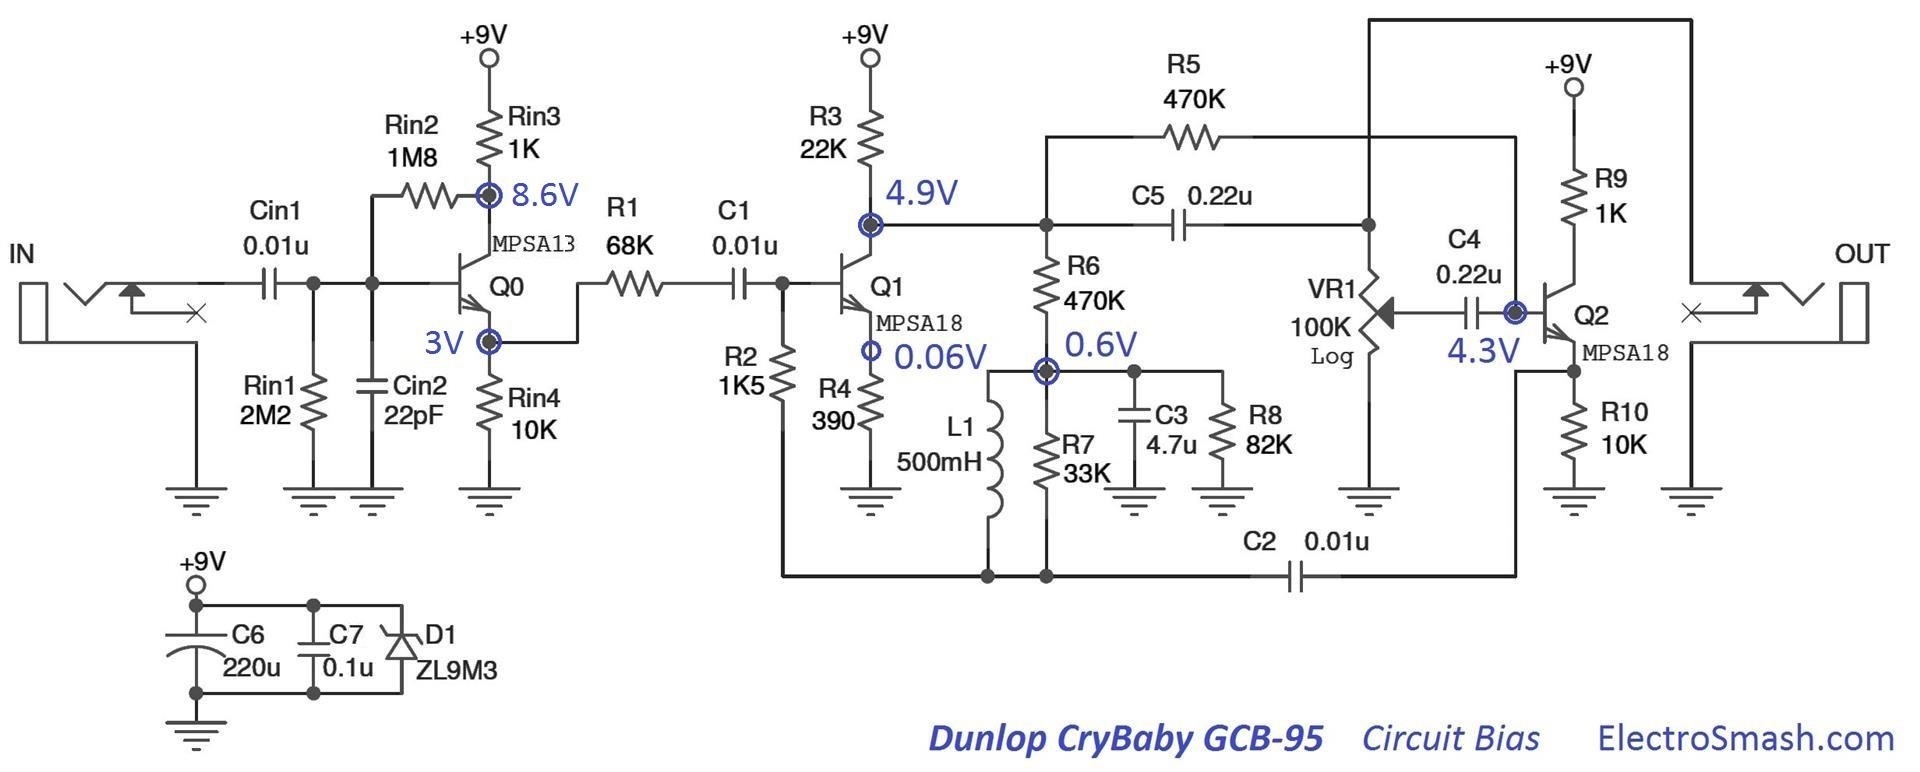 cry baby wah gcb 95 bias dunlop crybaby troubleshooting dunlop crybaby wiring diagram at eliteediting.co